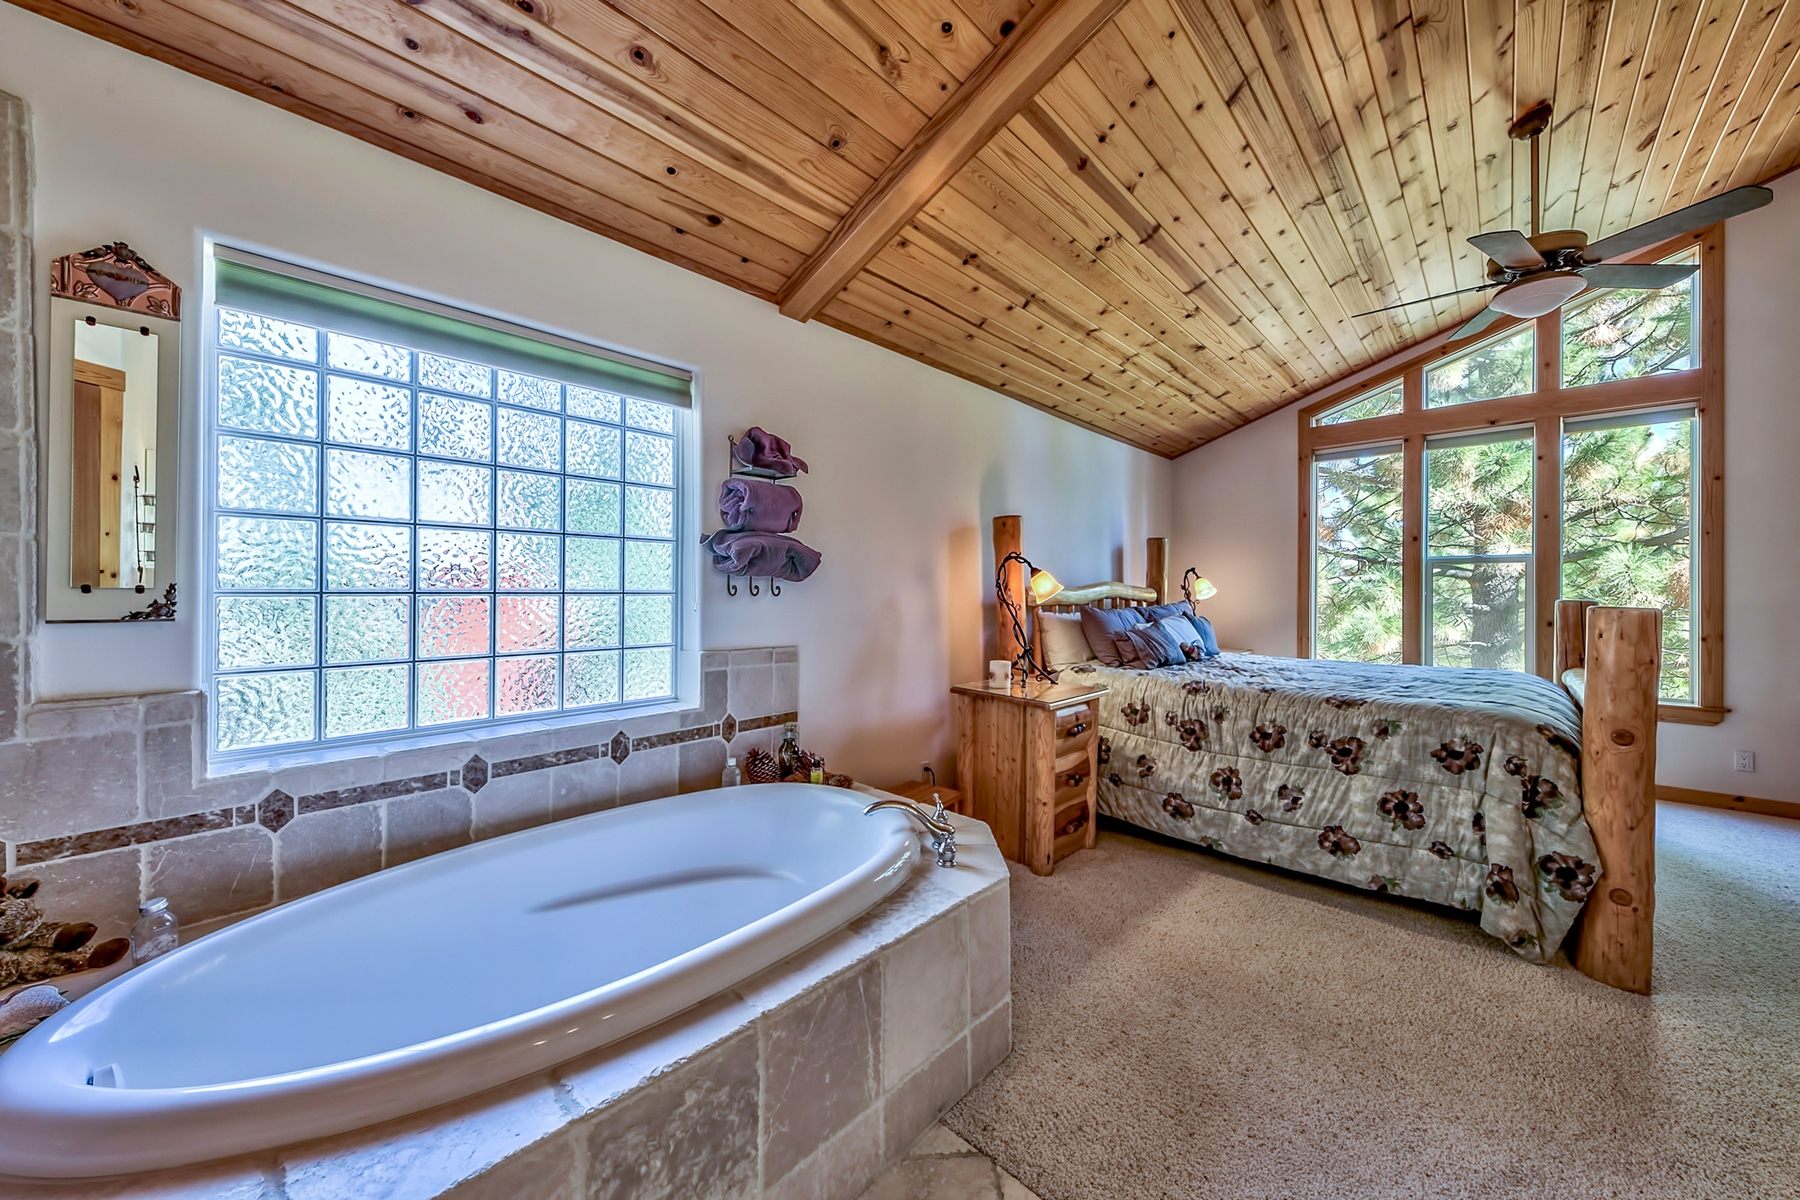 Additional photo for property listing at 13041 Stockholm Way, Truckee, CA 13041 Stockholm Way Truckee, California 96161 United States